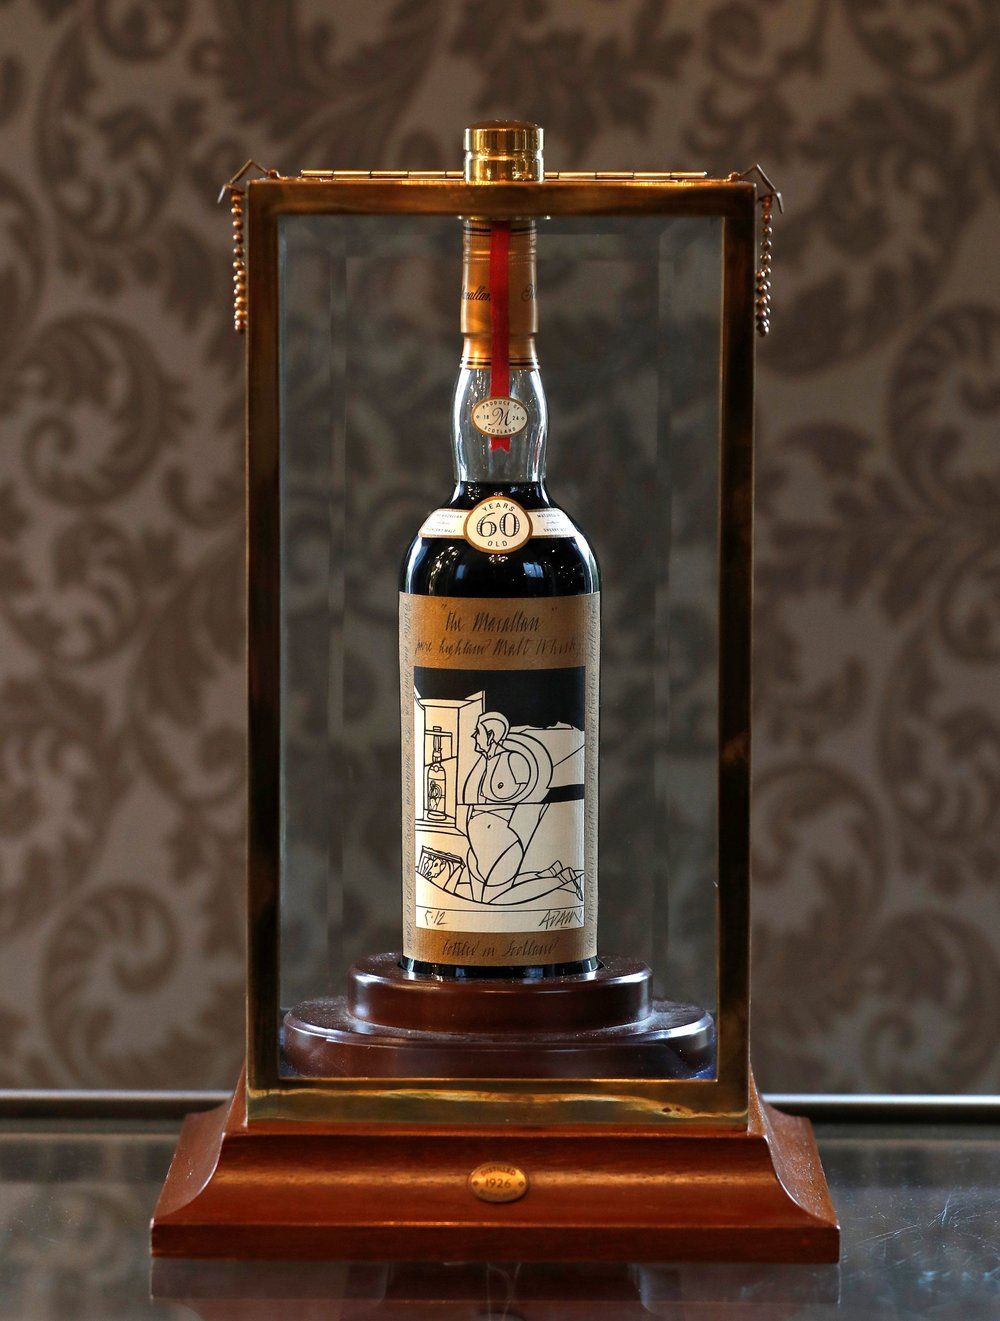 A 60-year old The Macallan Valerio Adami 1926 is seen in a glass case after it was auctioned for a record amount at Bonhams in Edinburgh, Scotland, Britain October 3, 2018. REUTERS/Russell Cheyne